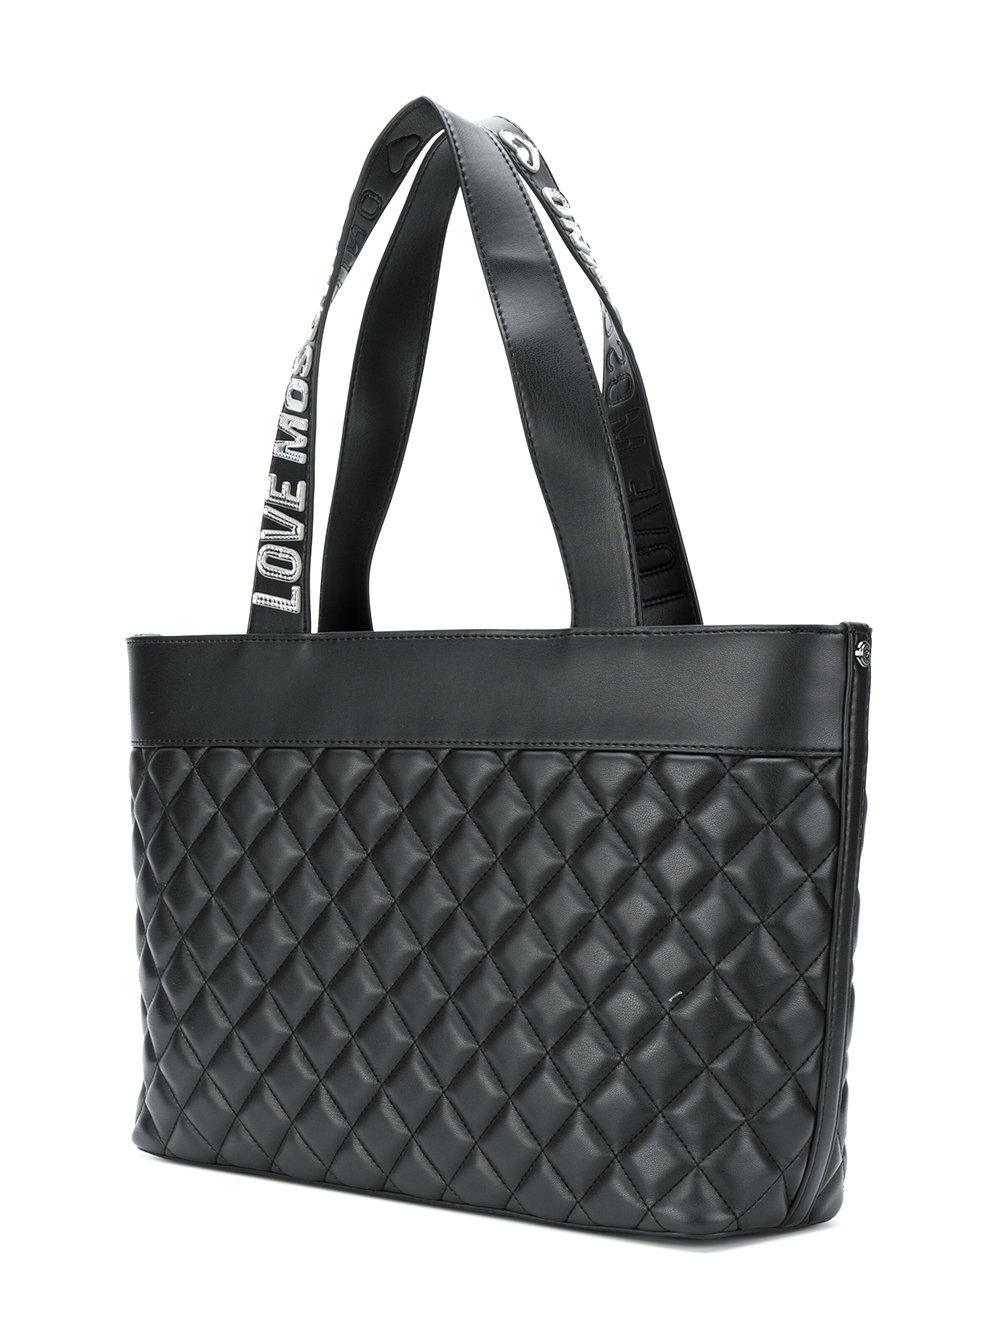 Love Moschino Diamond Quilted Tote Bag in Black